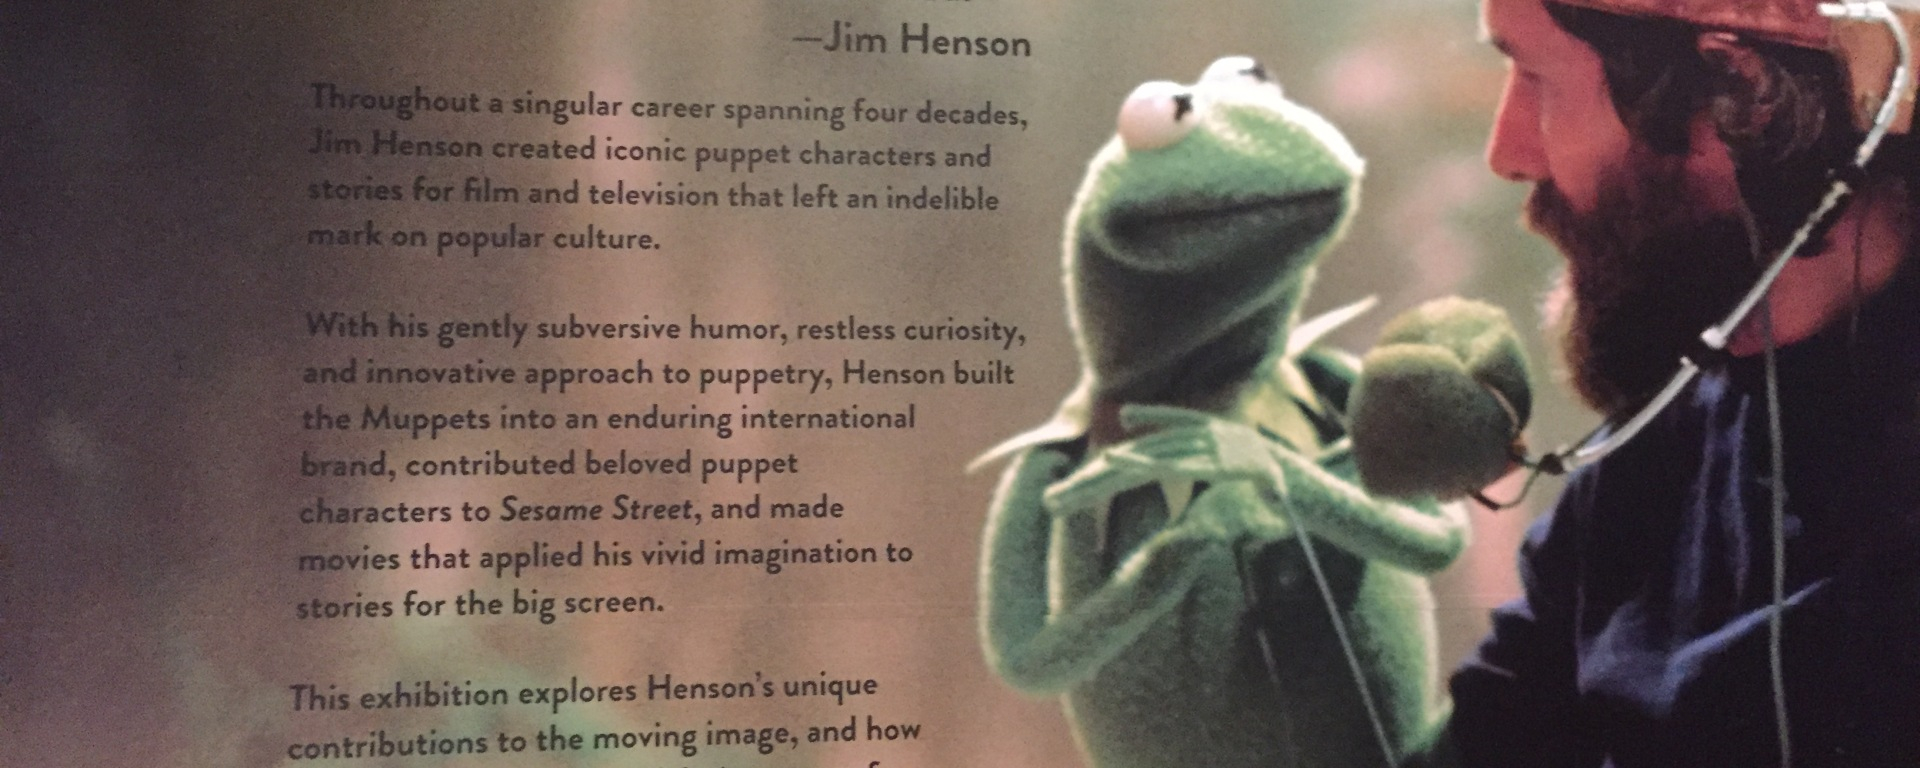 Skirball, Jim Henson, The Muppets